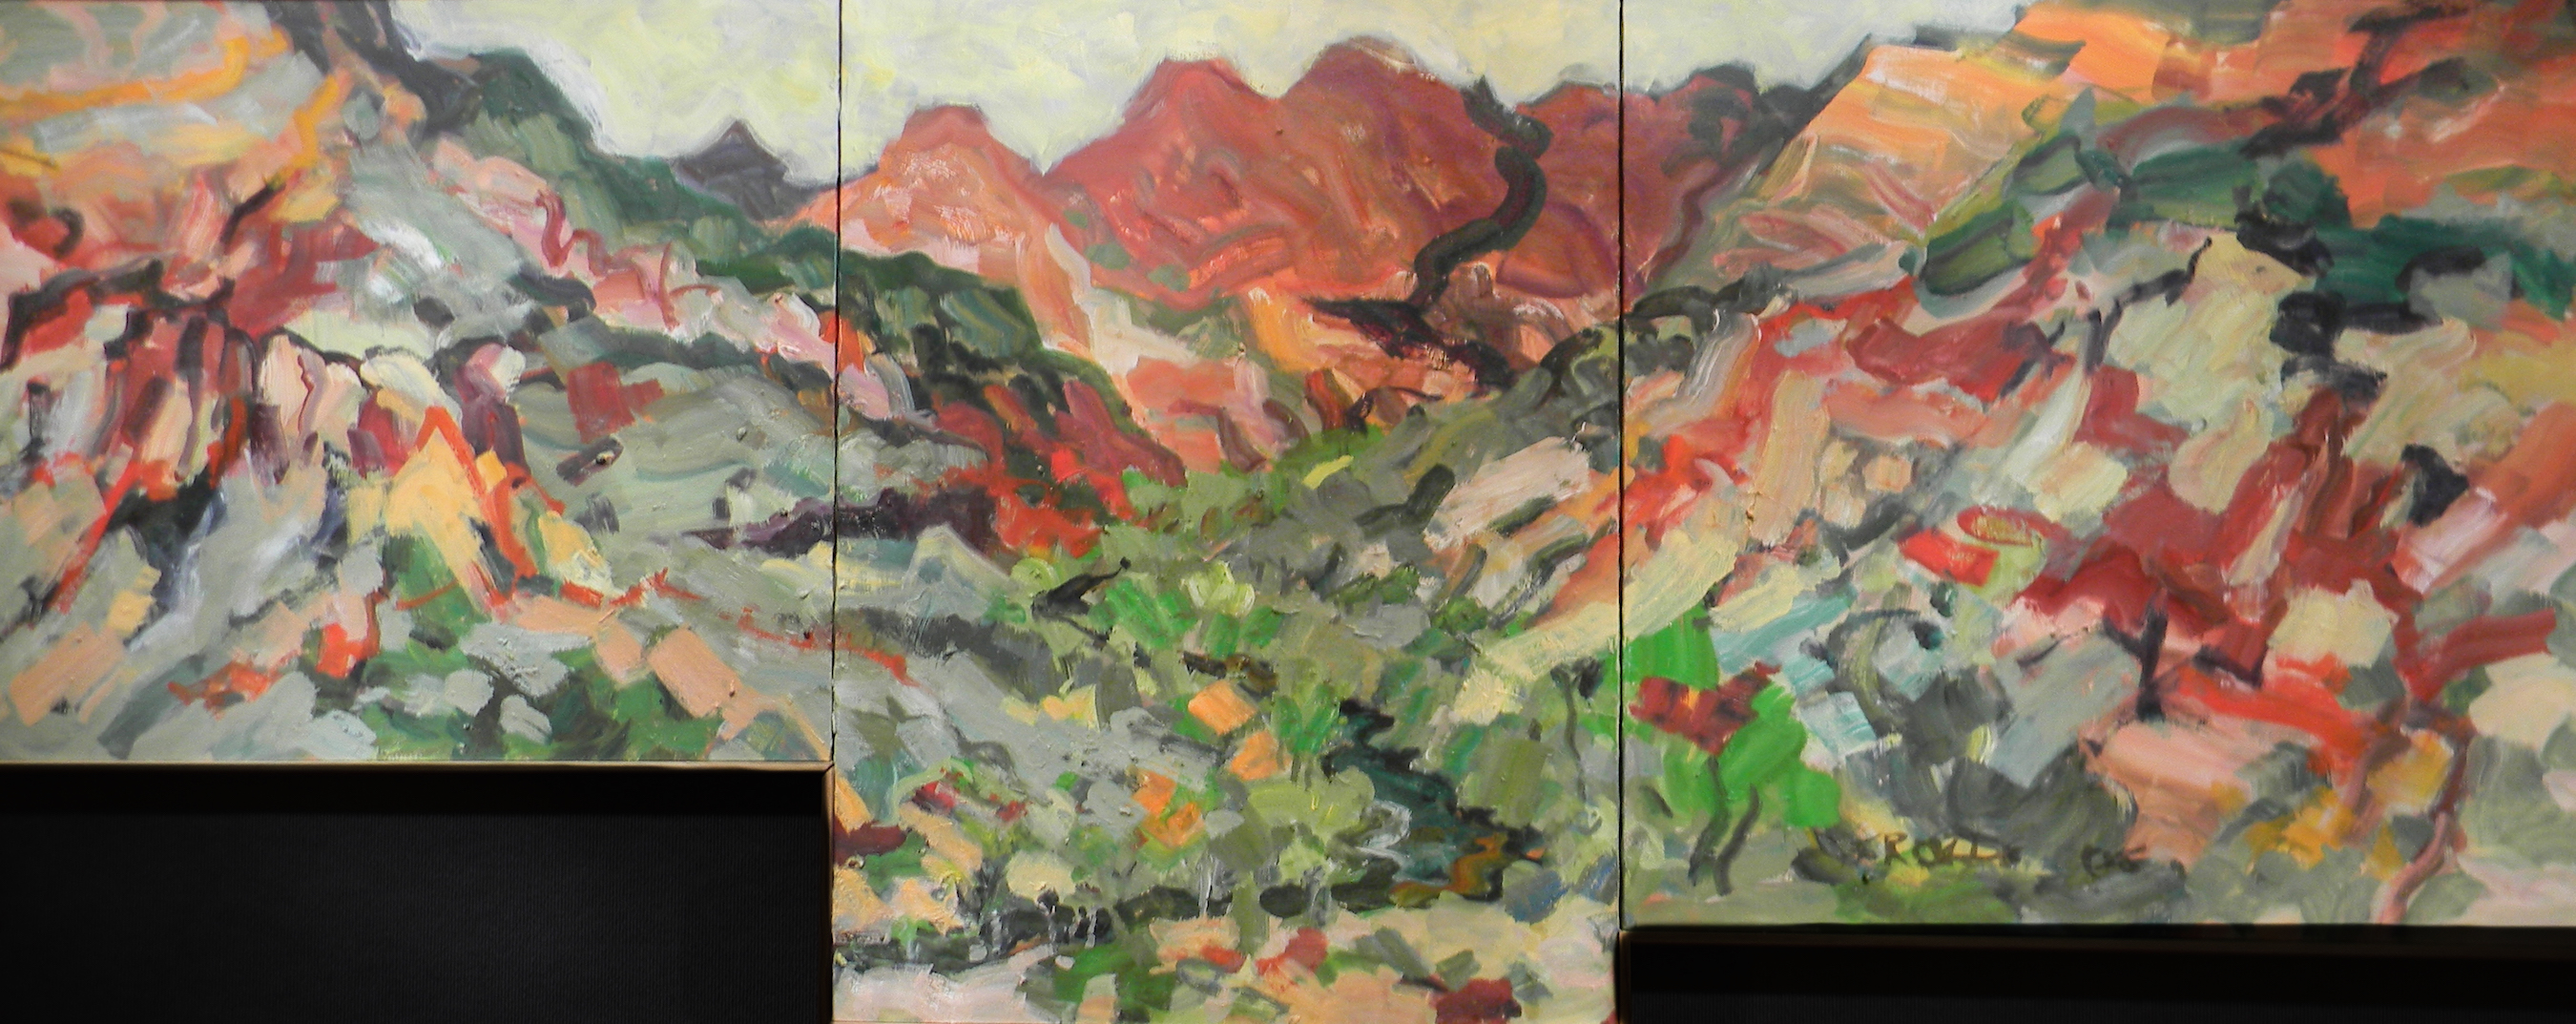 Sycamore Canyon by  Adele Seronde - Masterpiece Online